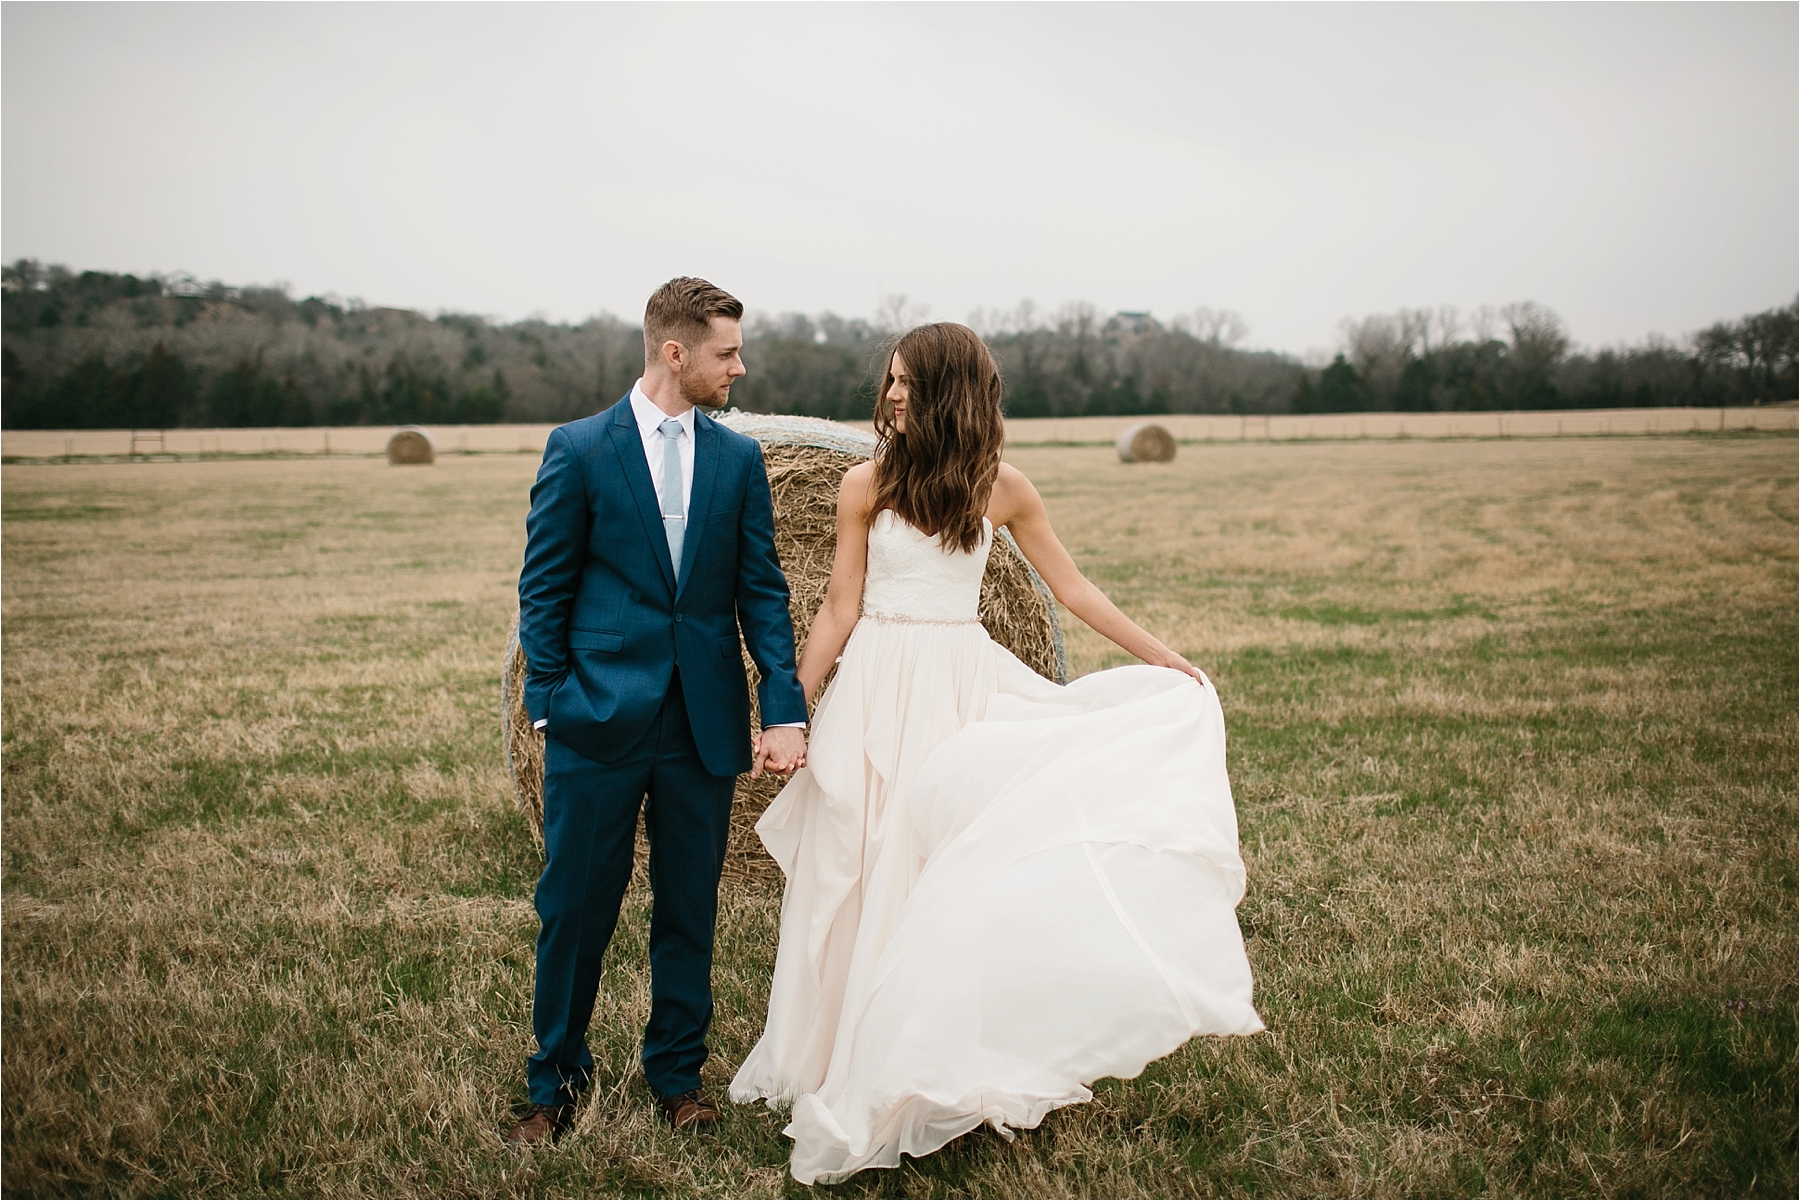 Lauren + Matt __ an intimate, emotional, blush pink, navy blue, and greenery toned wedding accents at the Brooks at Weatherford by North Texas Wedding Photographer Rachel Meagan Photography055